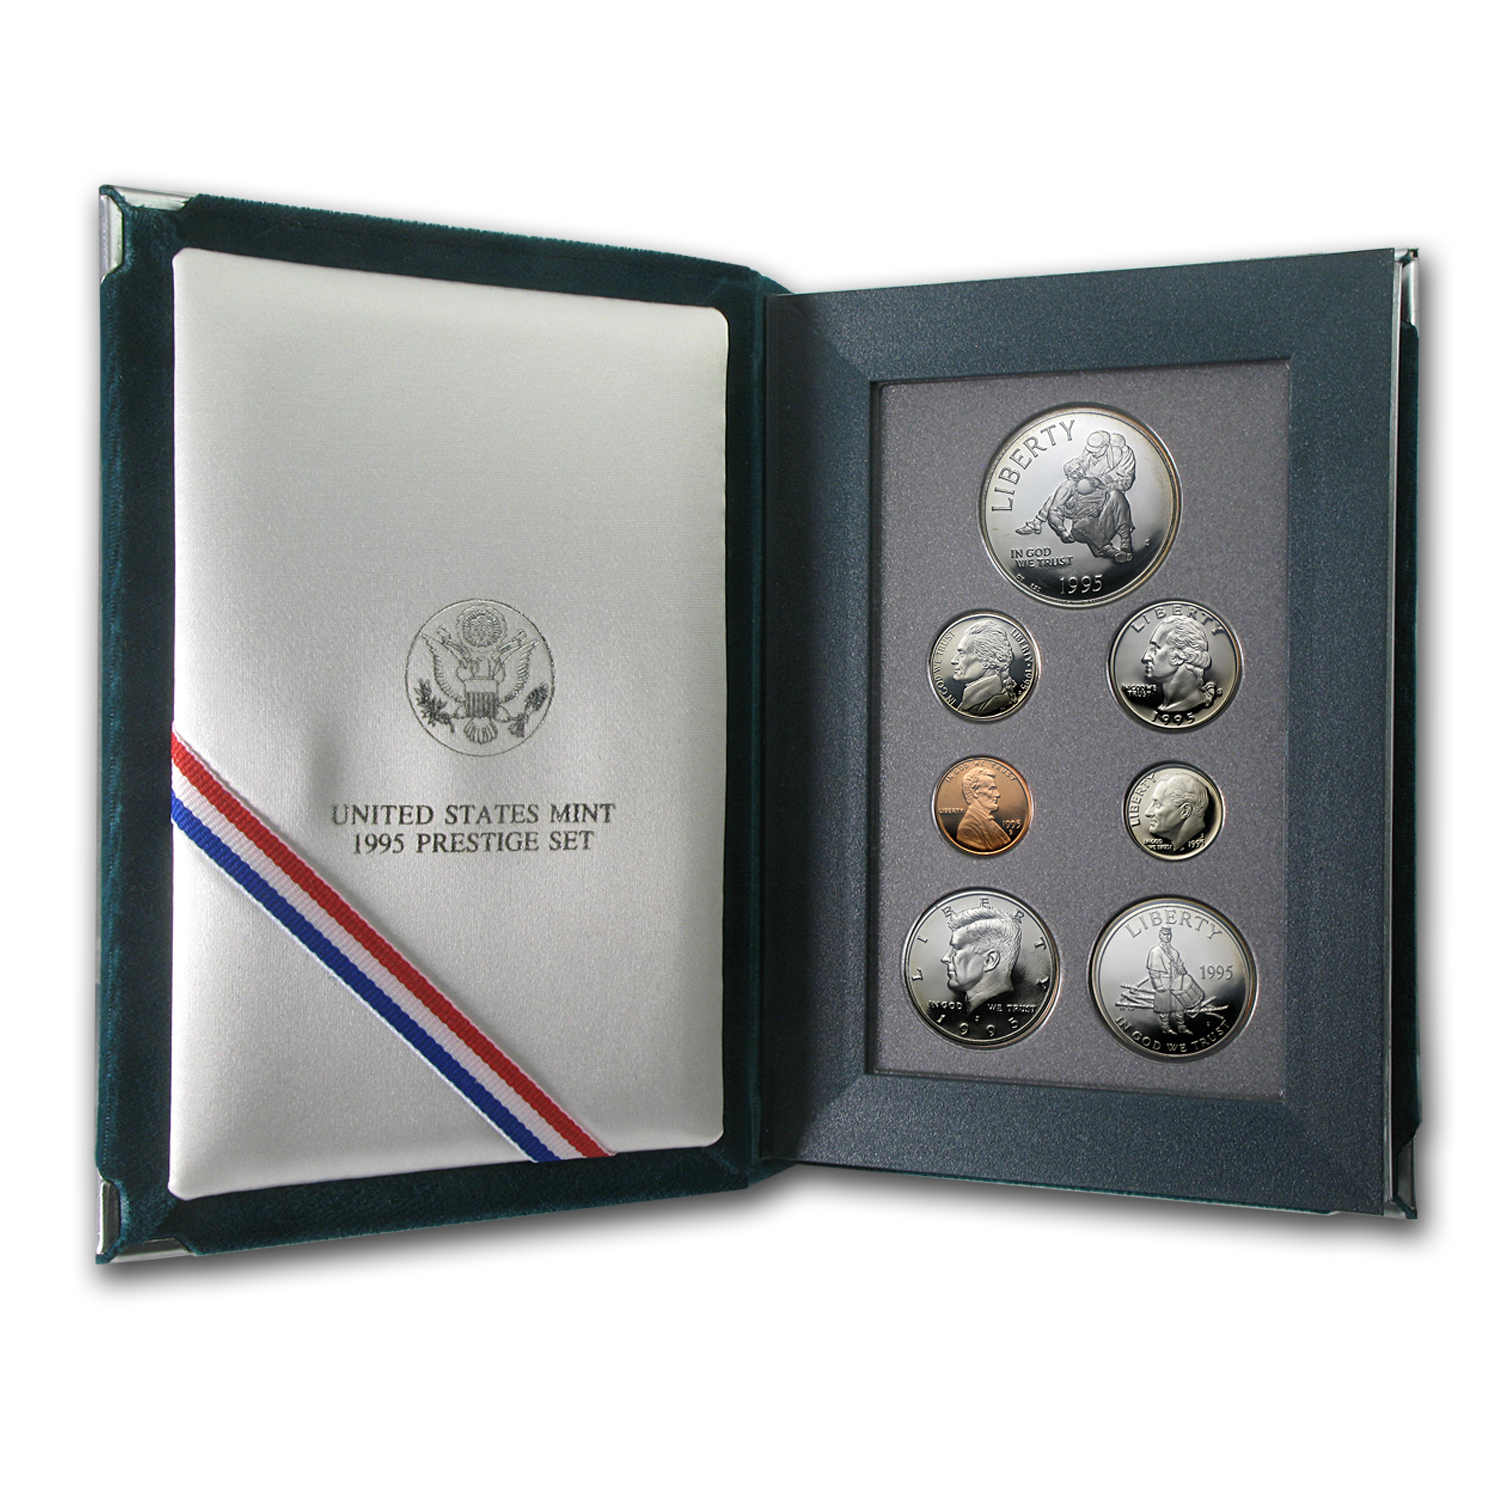 1995 U.S. Mint Prestige Set